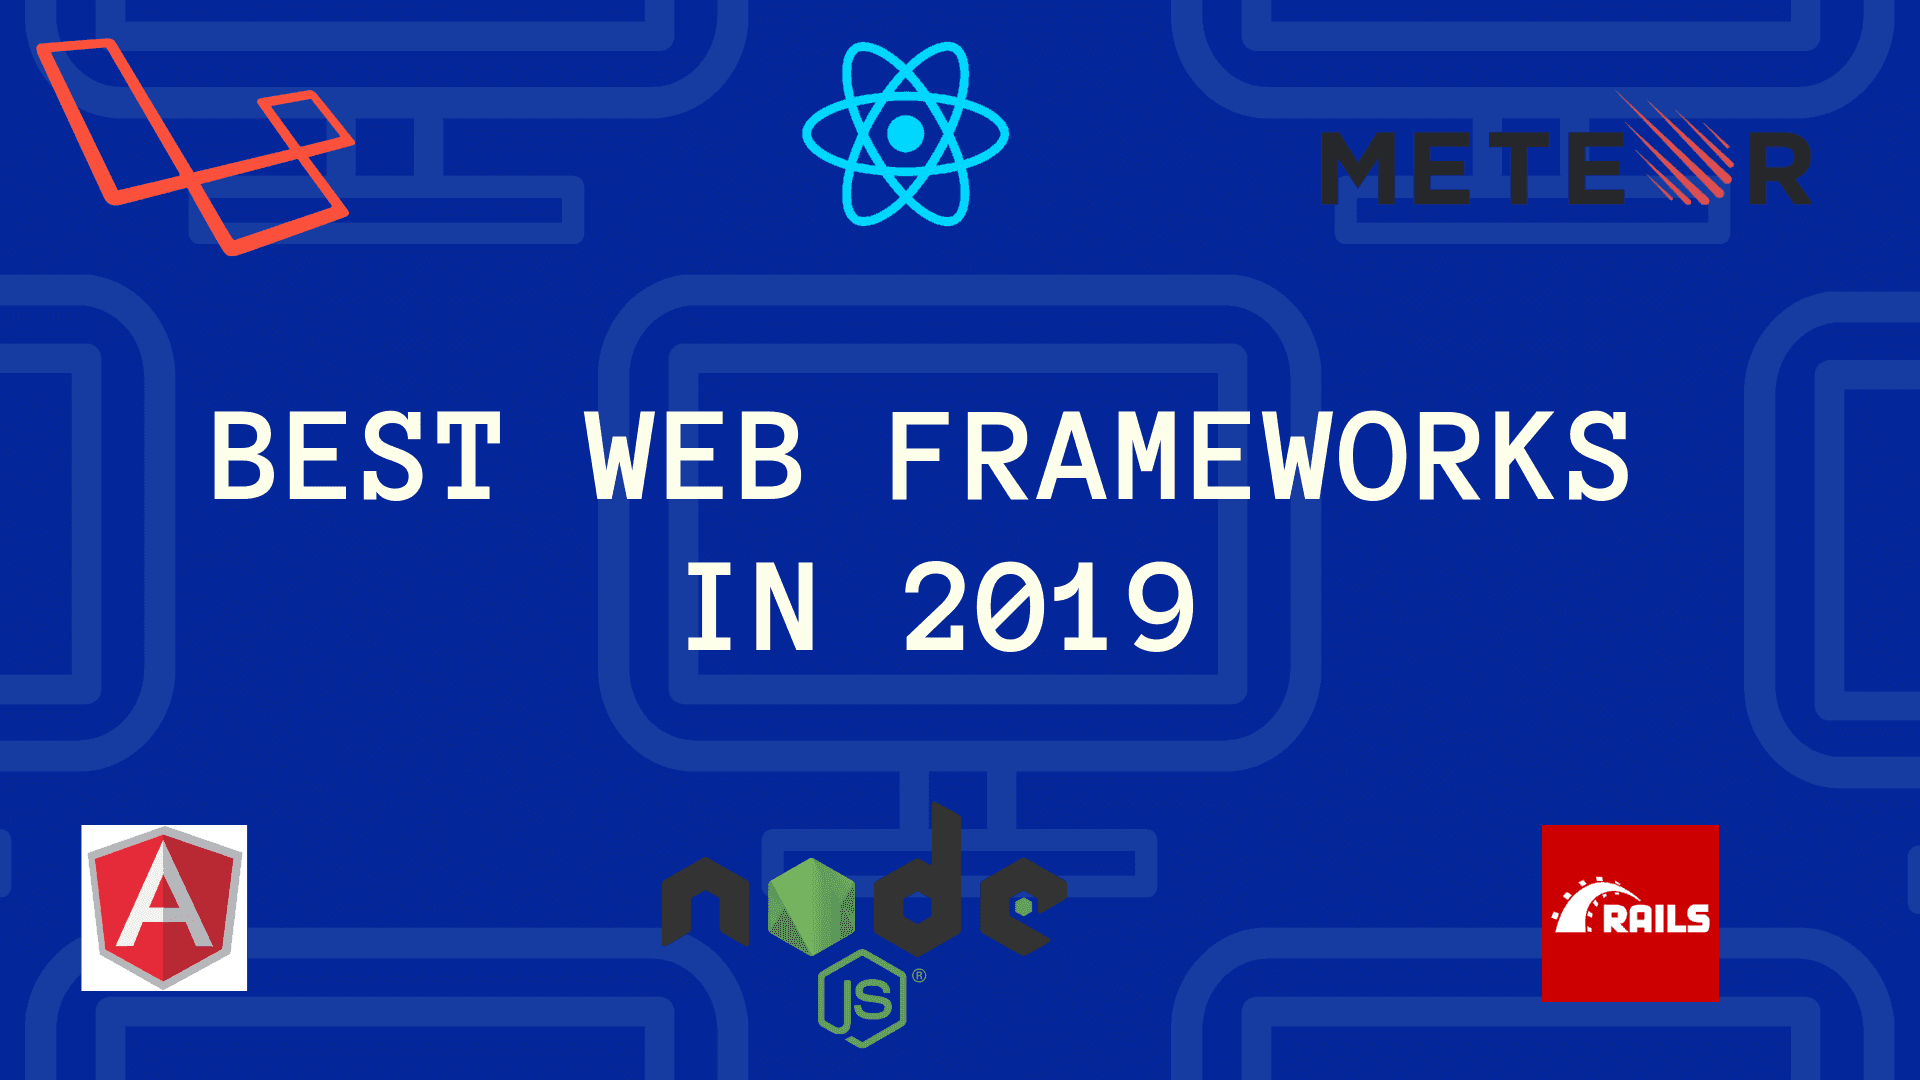 Top Web Frameworks to Learn in 2019